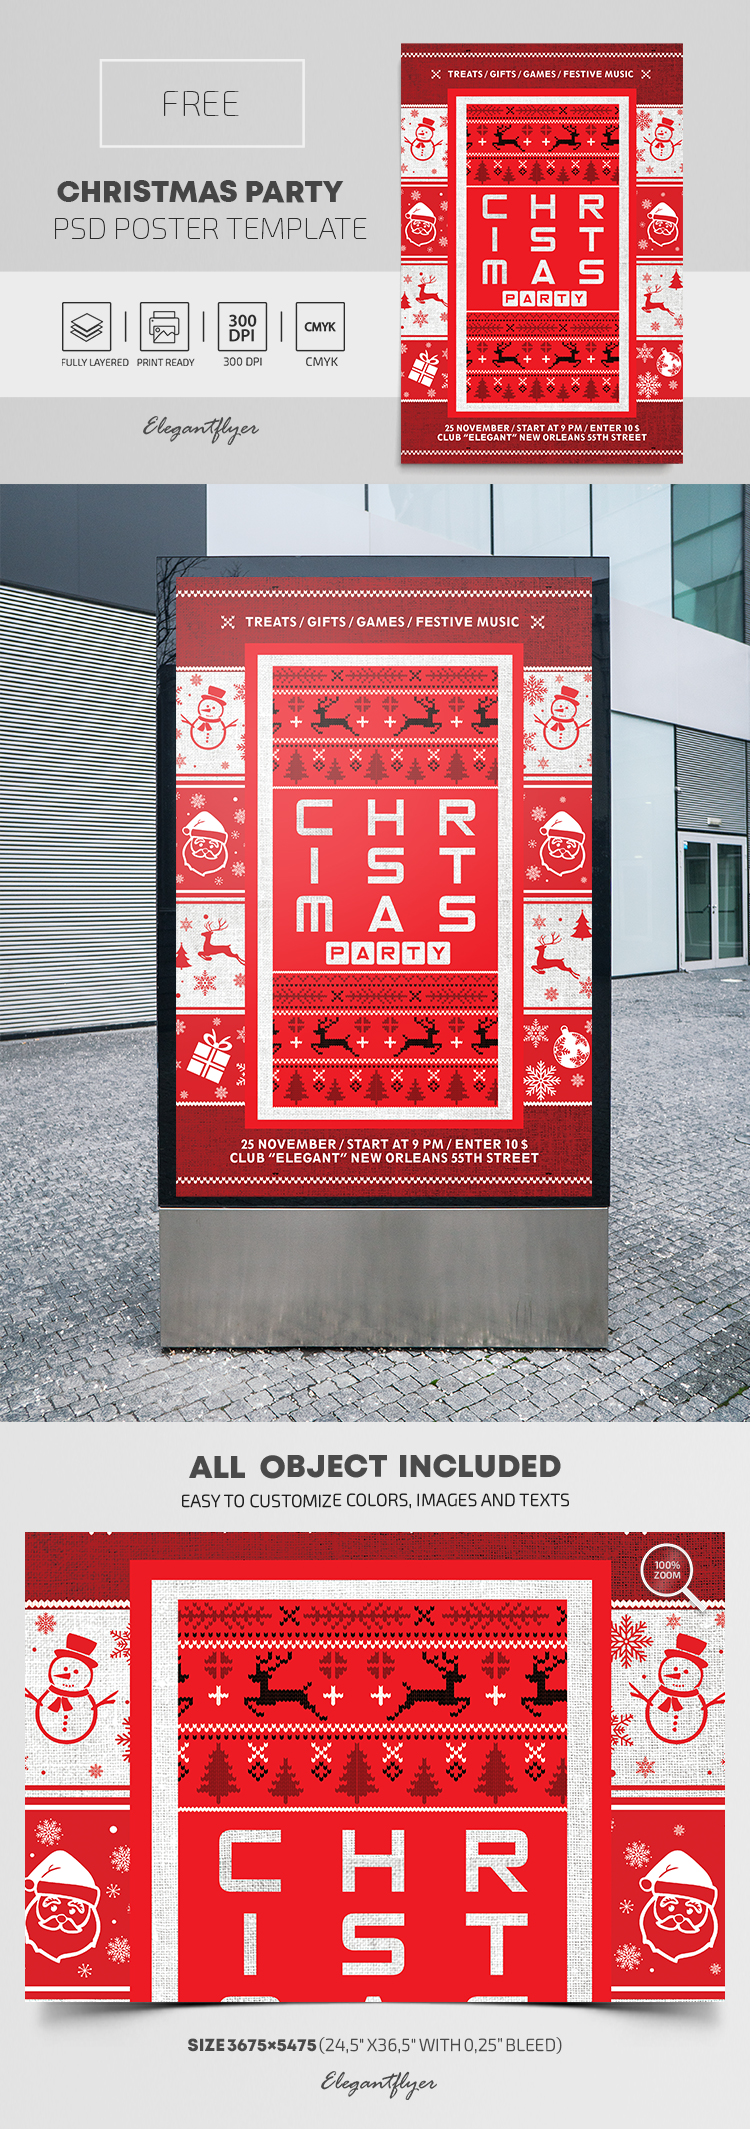 Christmas Party – Free PSD Poster Template